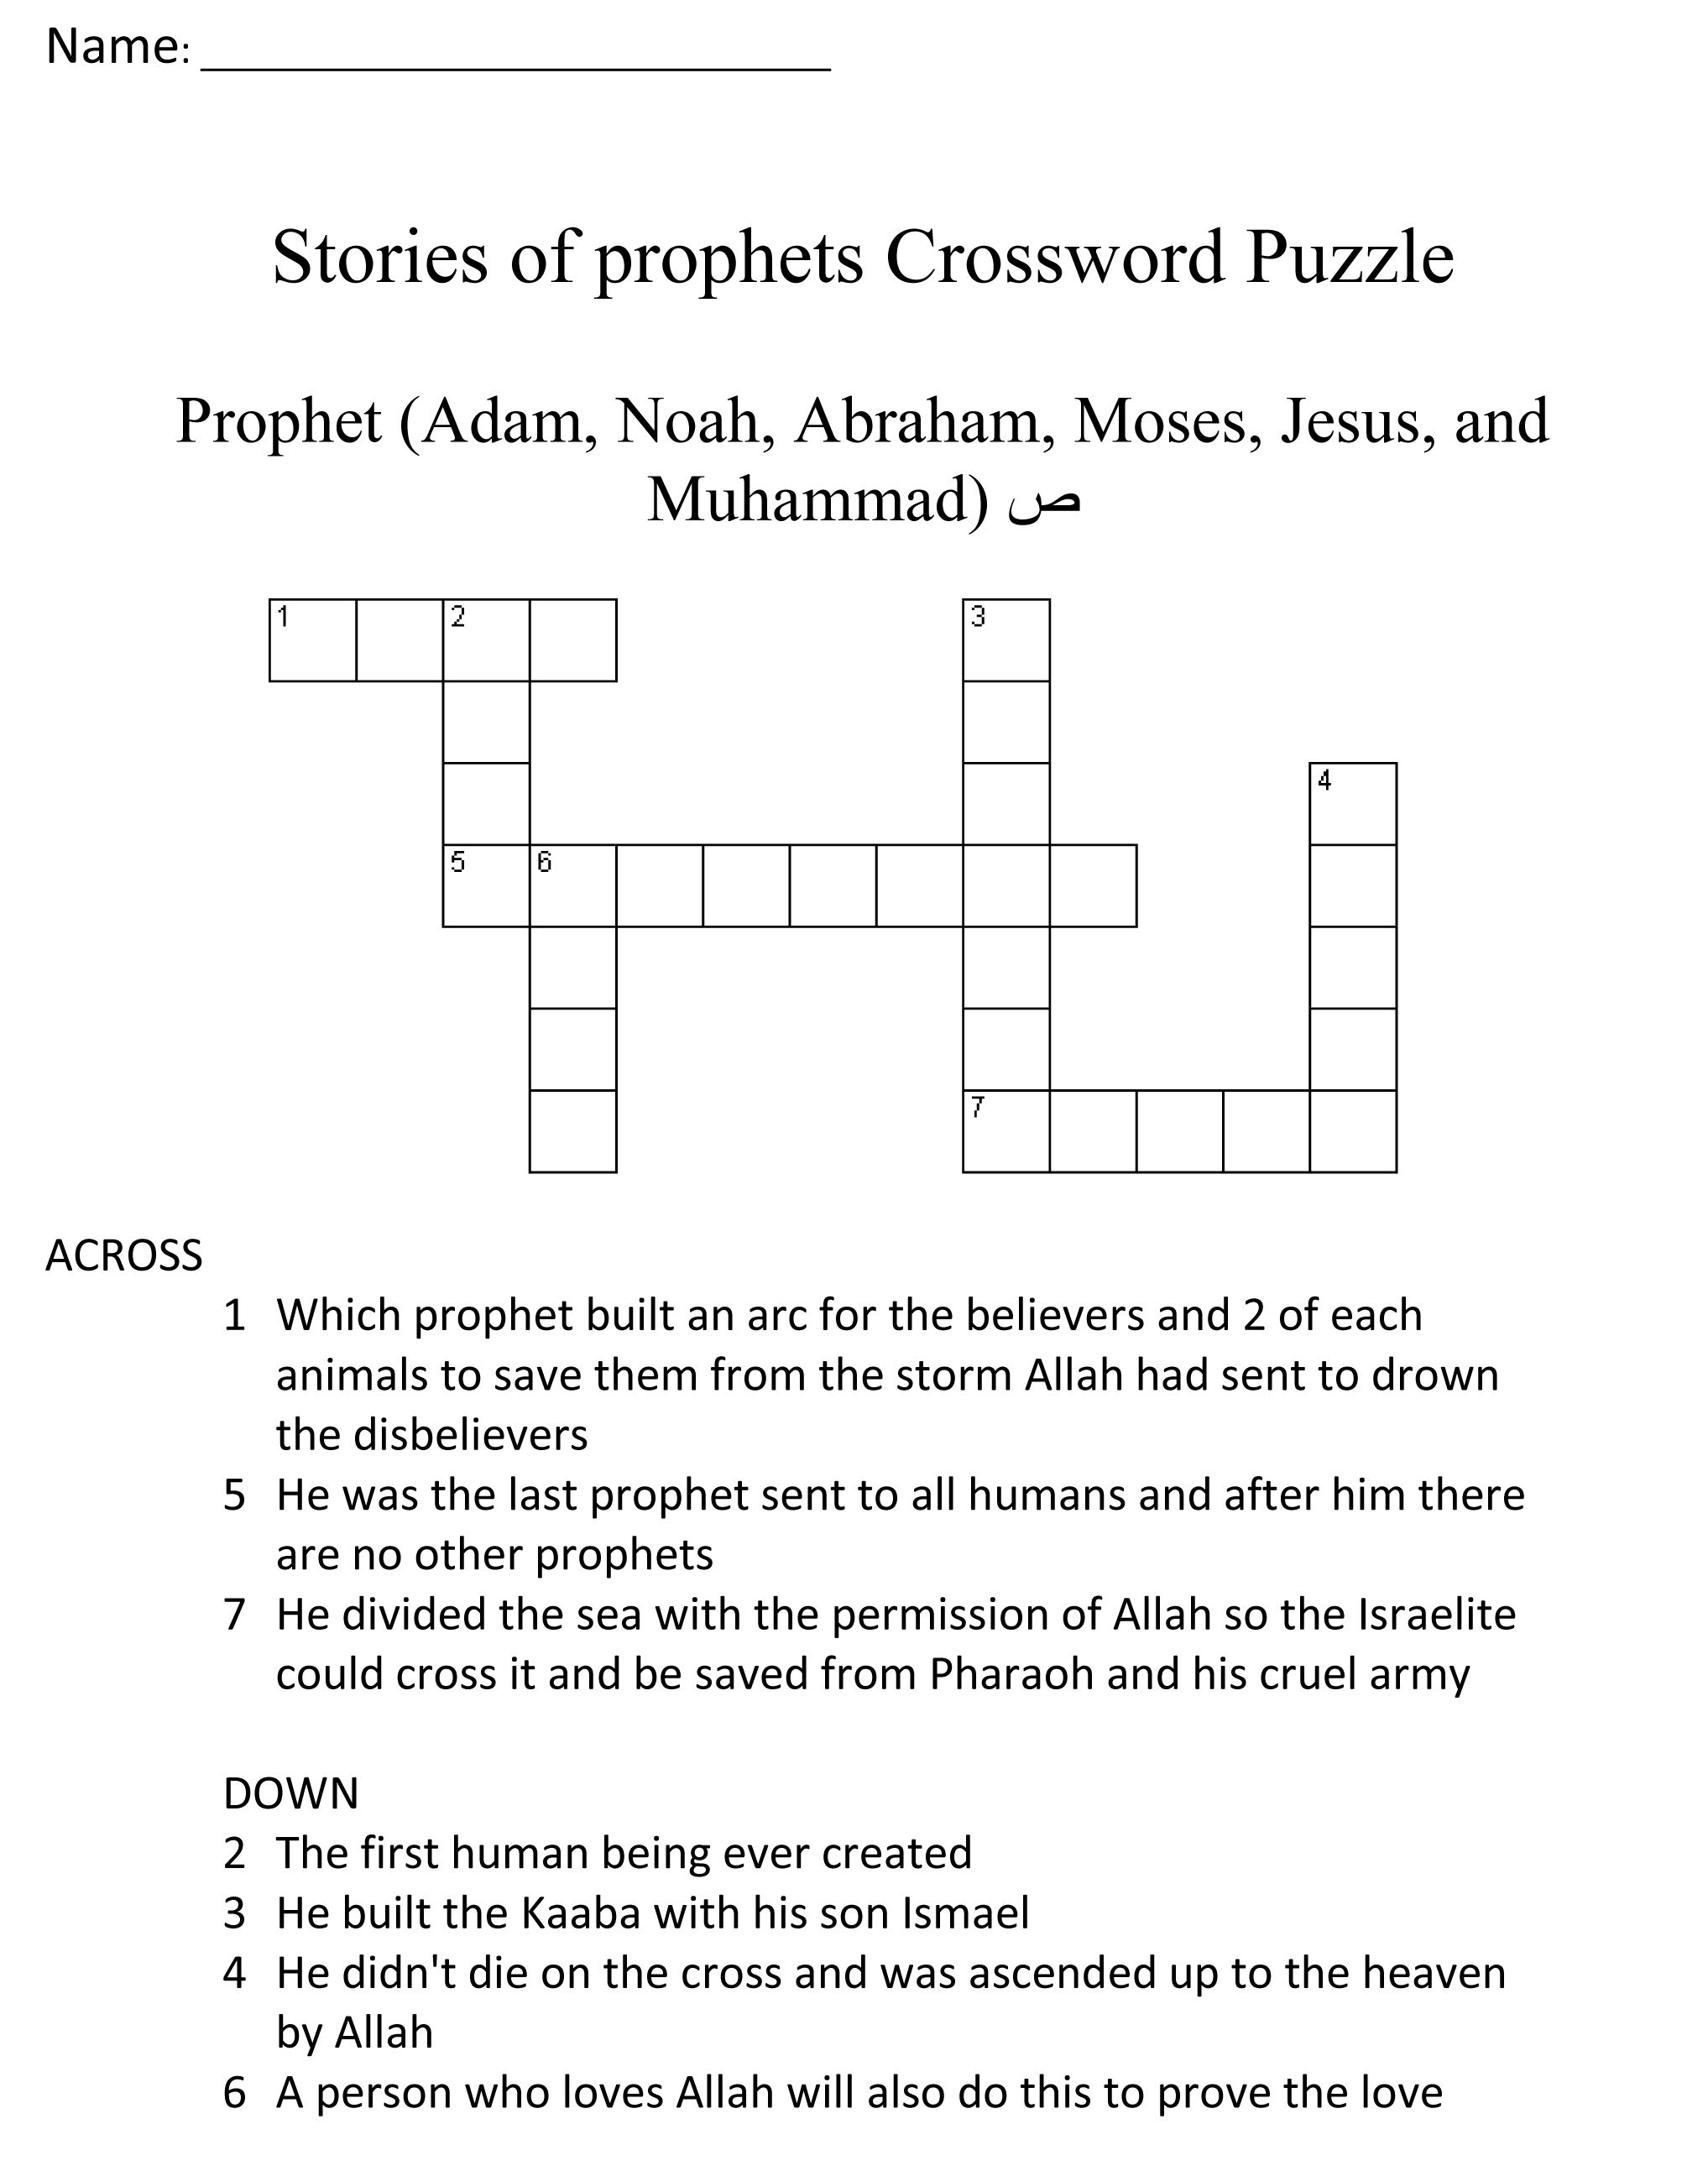 Prophets Crossword Puzzle | Little Followers Of Ahlul-Bayt - Islamic Crossword Puzzles Printable